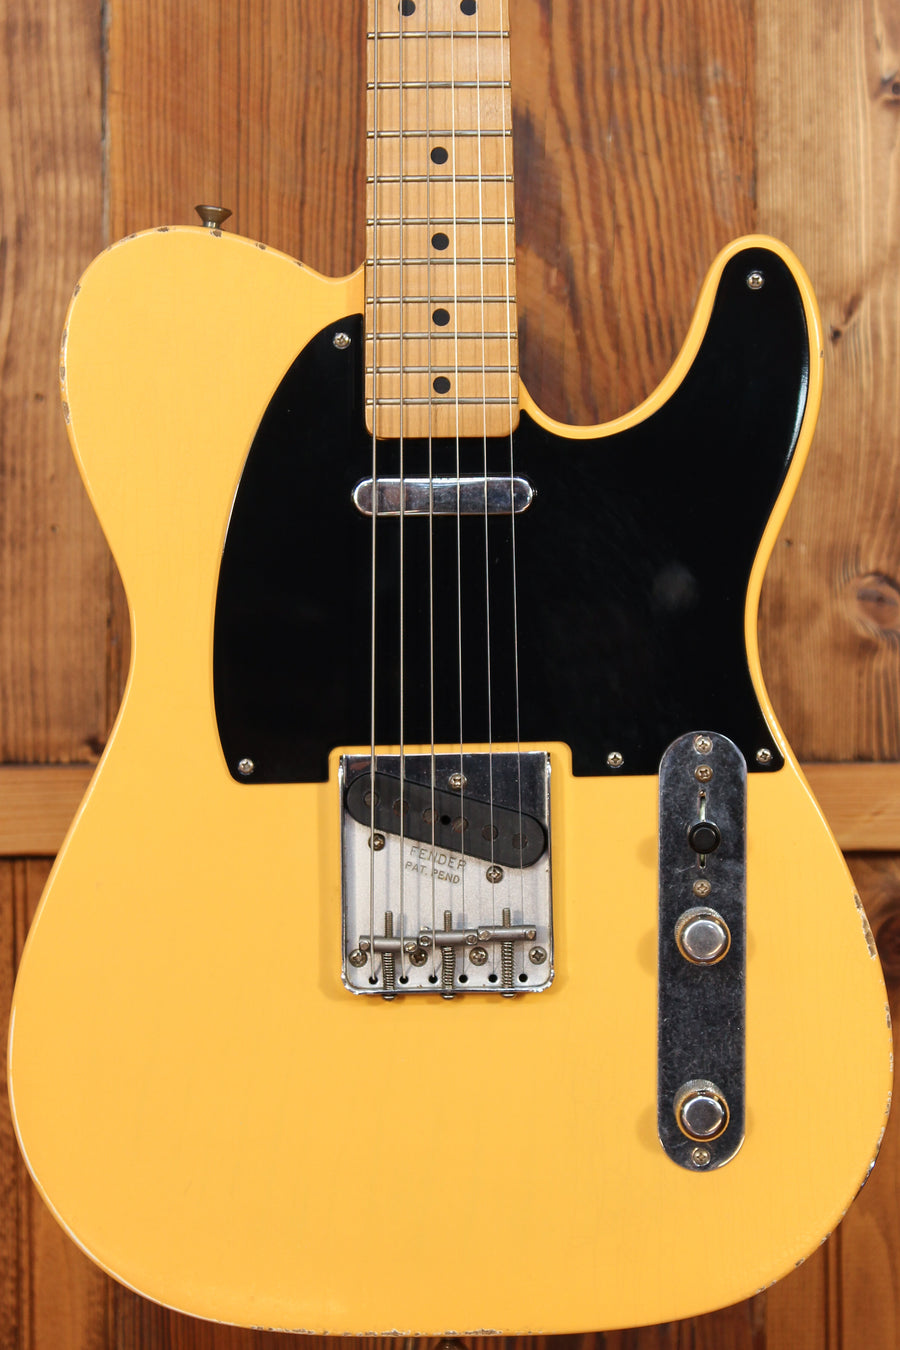 Fender Roadworn 50's Telecaster w/ Aged Butterscotch Finish Pre-Owned 2017